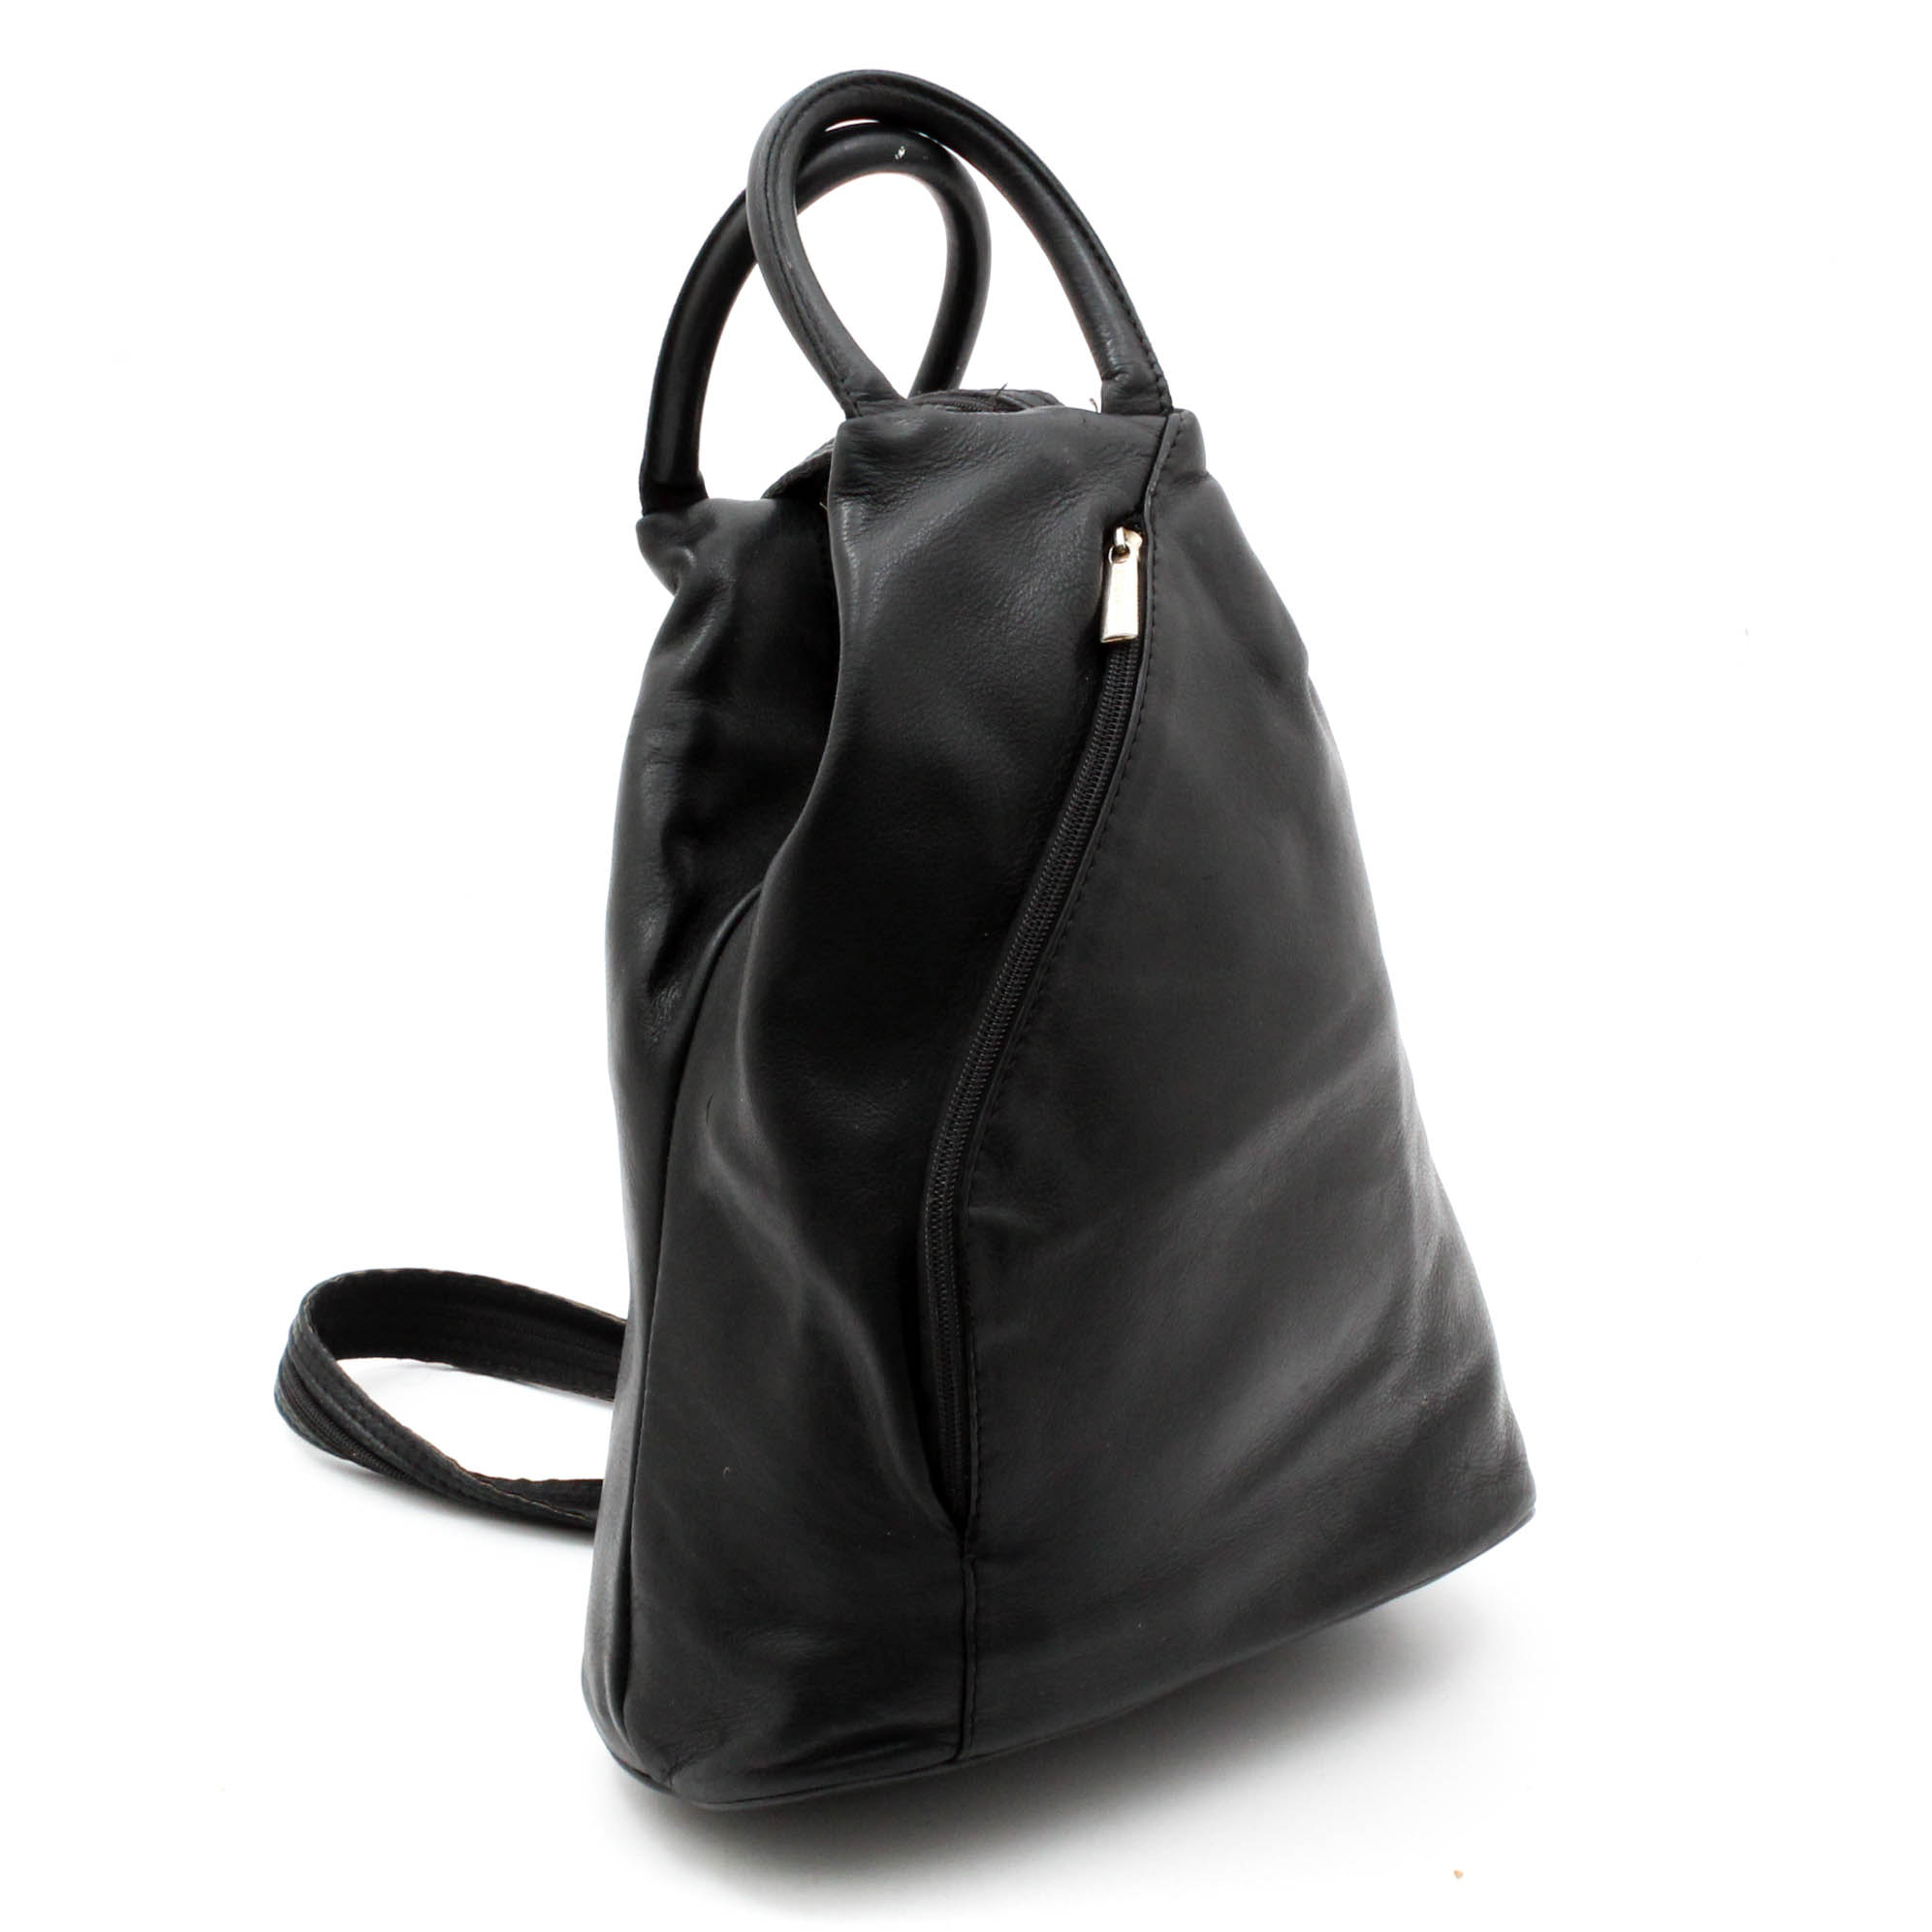 Design of Italy Black Leather Convertible Backpack Handbag